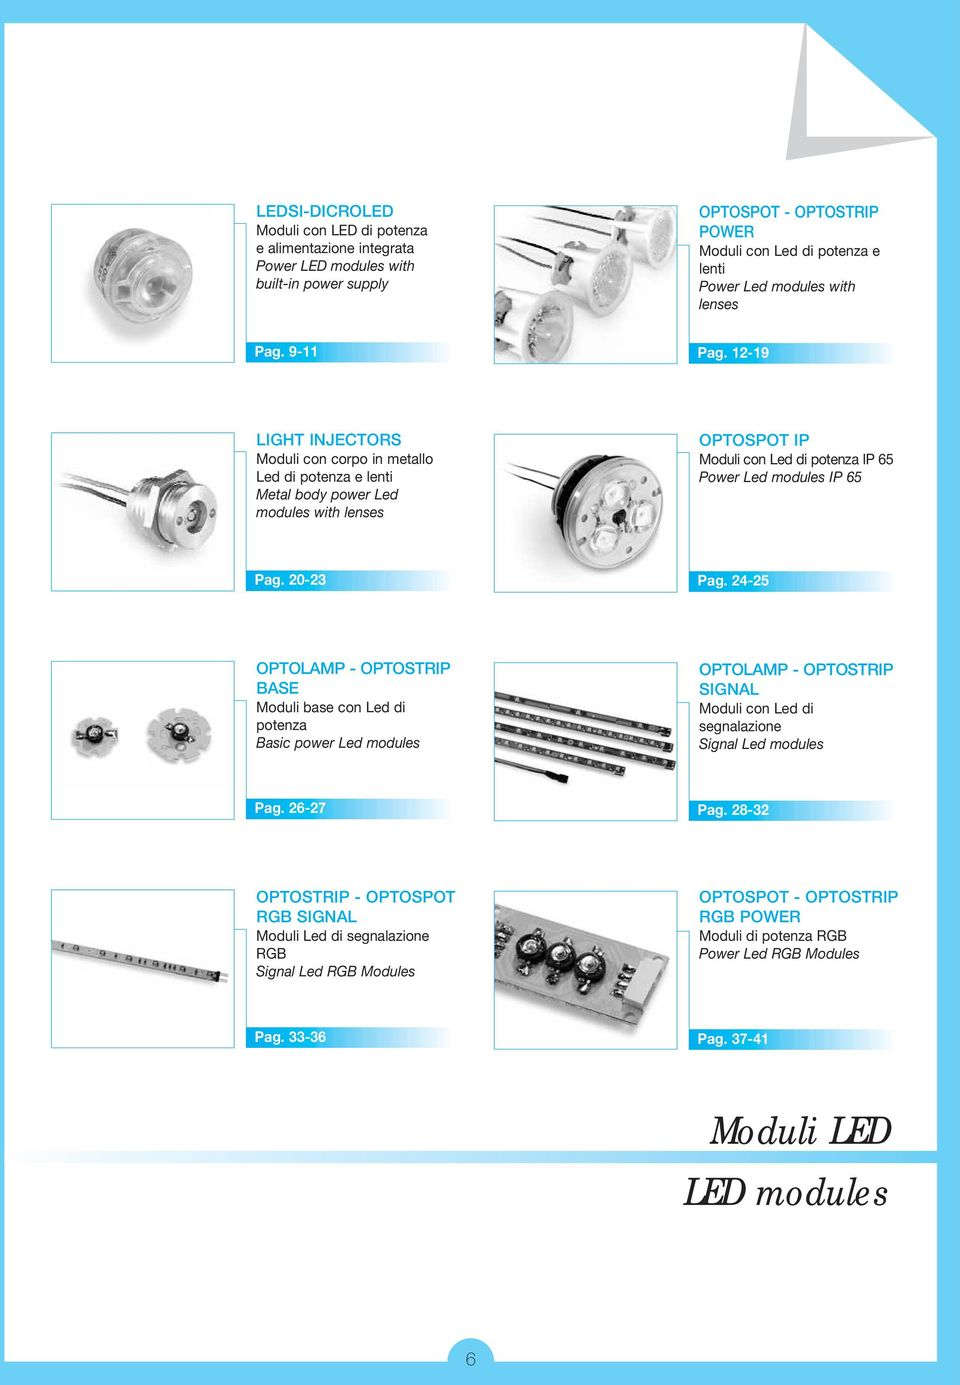 12-19 LIGHT INJECTORS Moduli con corpo in metallo Led di potenza e lenti Metal body power Led modules with lenses OPTOSPOT IP Moduli con Led di potenza IP 65 Power Led modules IP 65 Pag. 20-23 Pag.